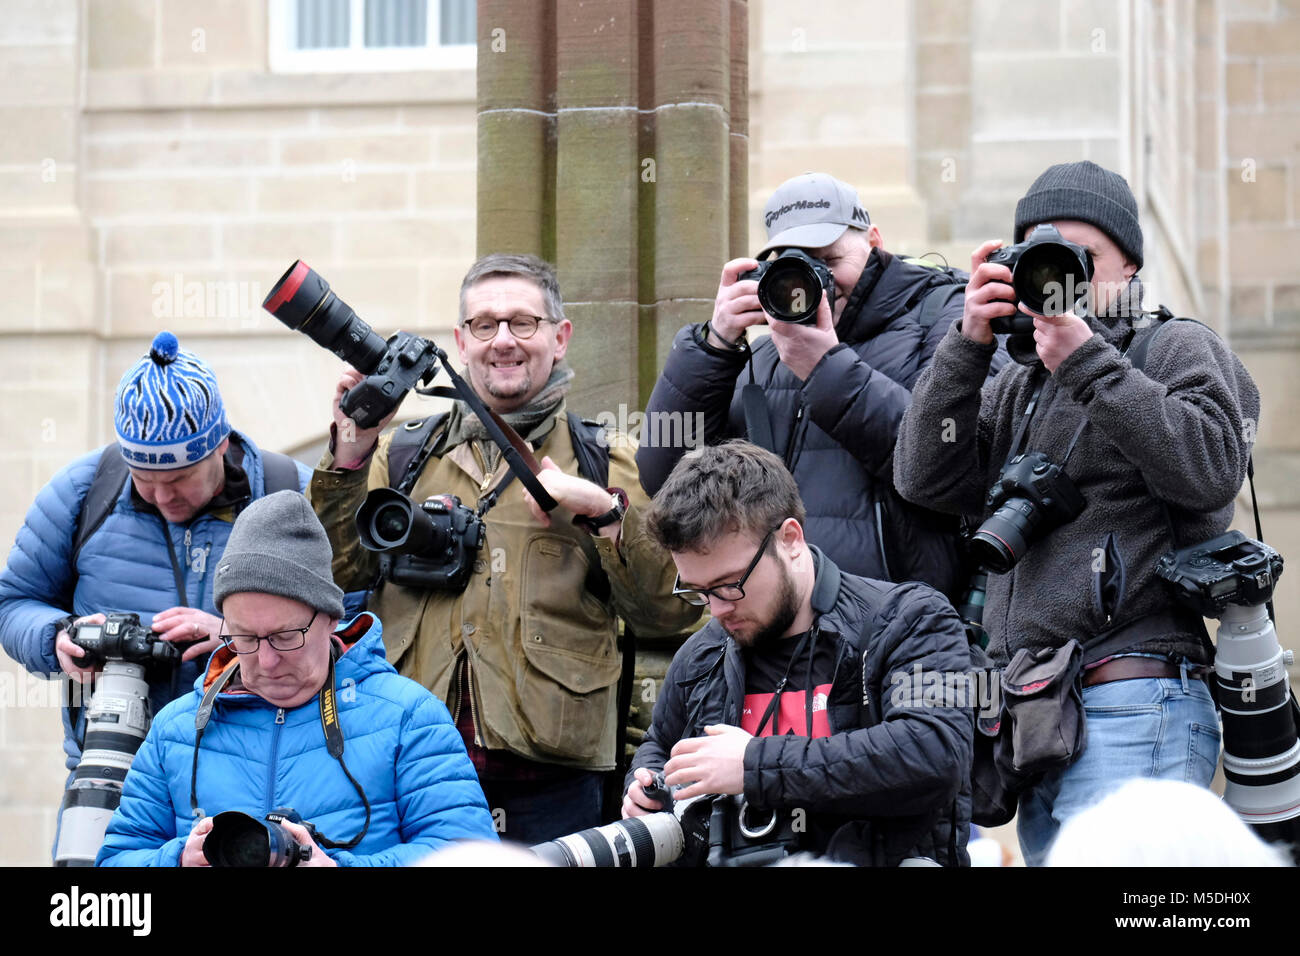 Jedburgh, Mercat Cross, UK. 22nd Feb, 2018. Jed Hand Ba' The annual game of hand ba' takes place every year the Thursday after Fastern's E'en. The tradition derives from 1548 when a party of Scots recaptured Ferniehirst Castle, a mile south of Jedburgh and used an Englishman's head in a celebratory game after the battle. Photographers from across the country arrive to document the event ( Credit: Rob Gray/Alamy Live News Stock Photo